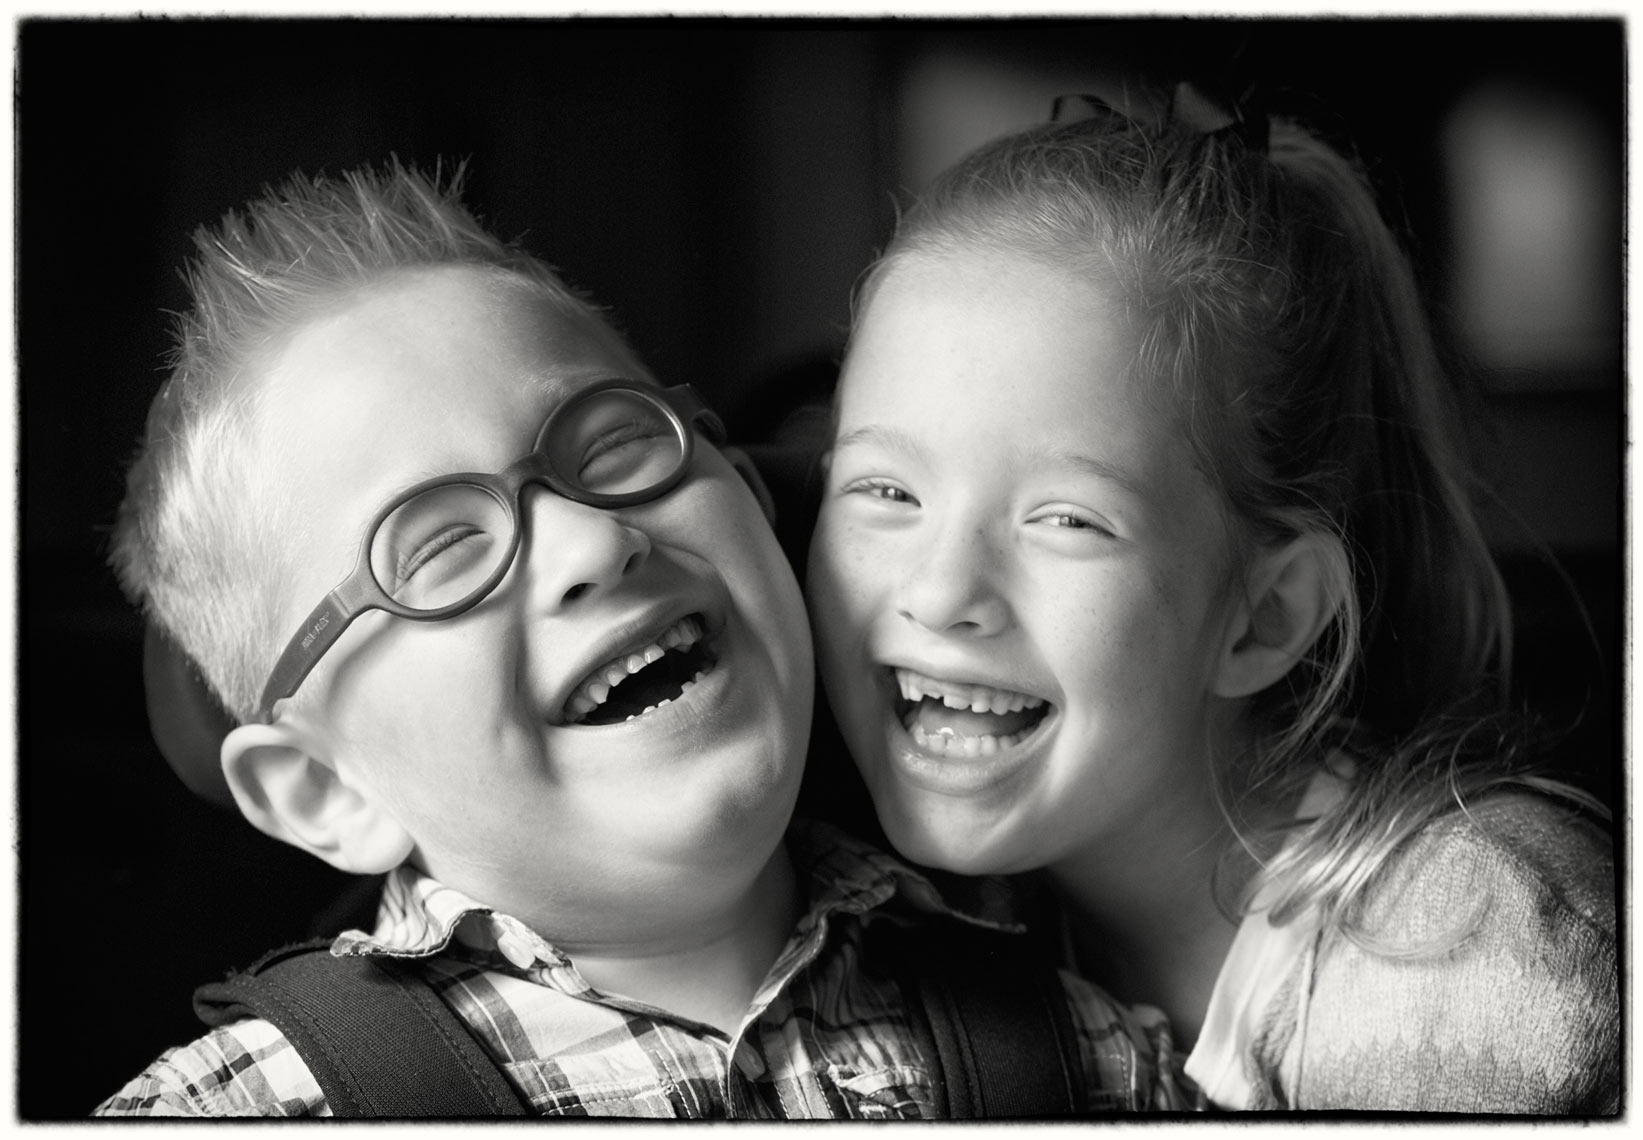 Speacial needs kids/b&w/laughing/lifestyle photo